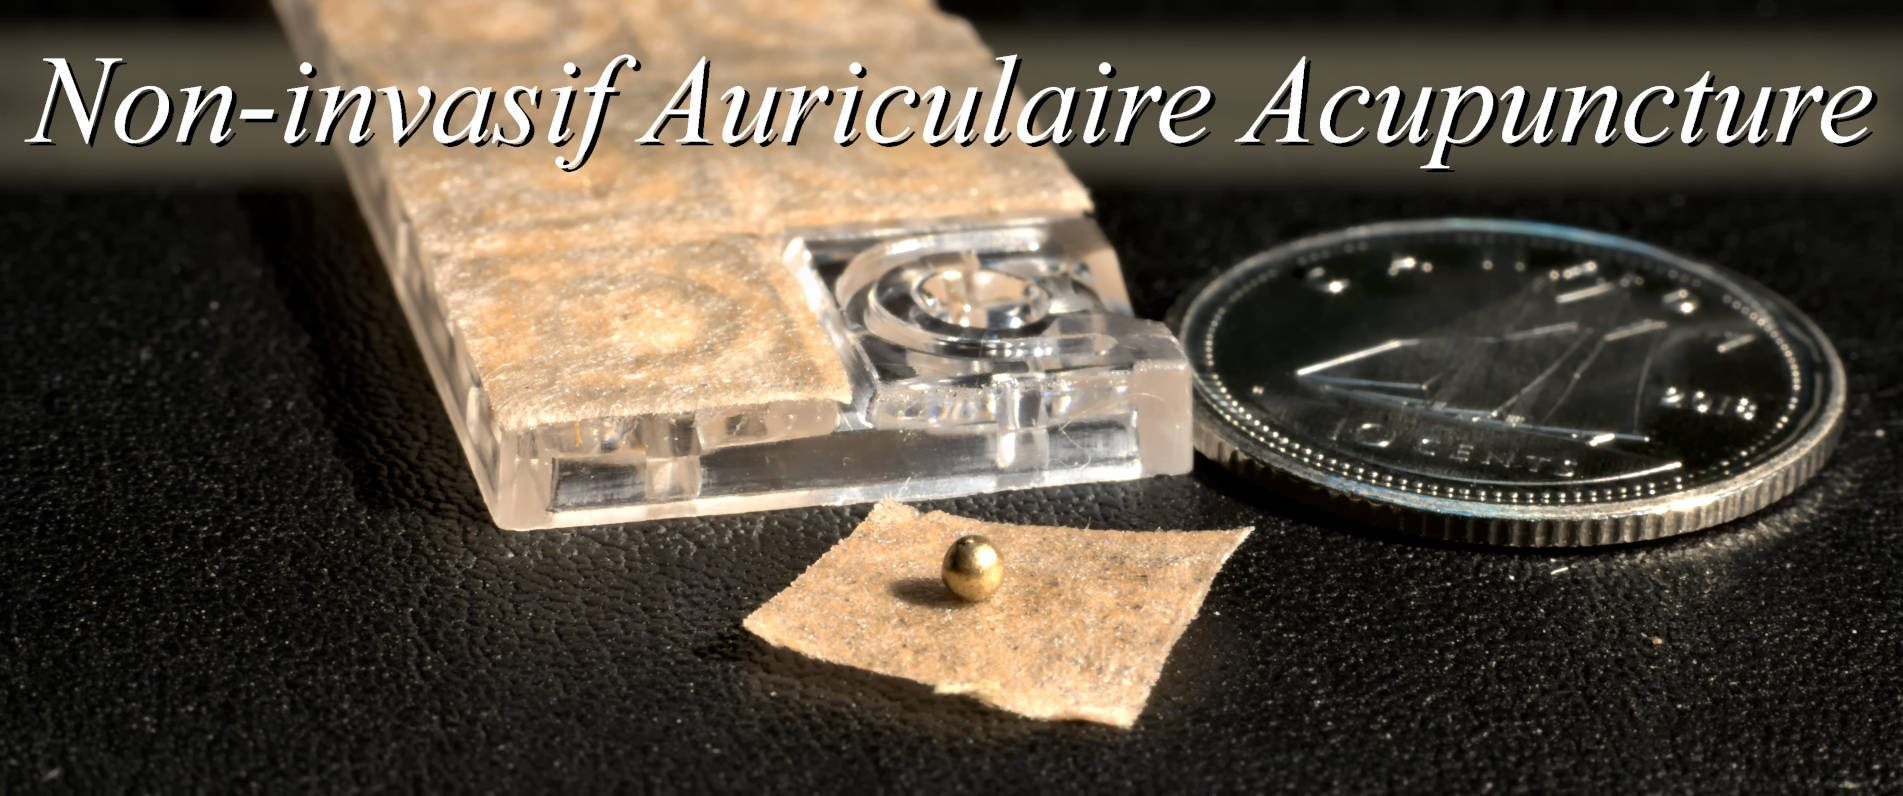 acupuncture auriculaire longueuil